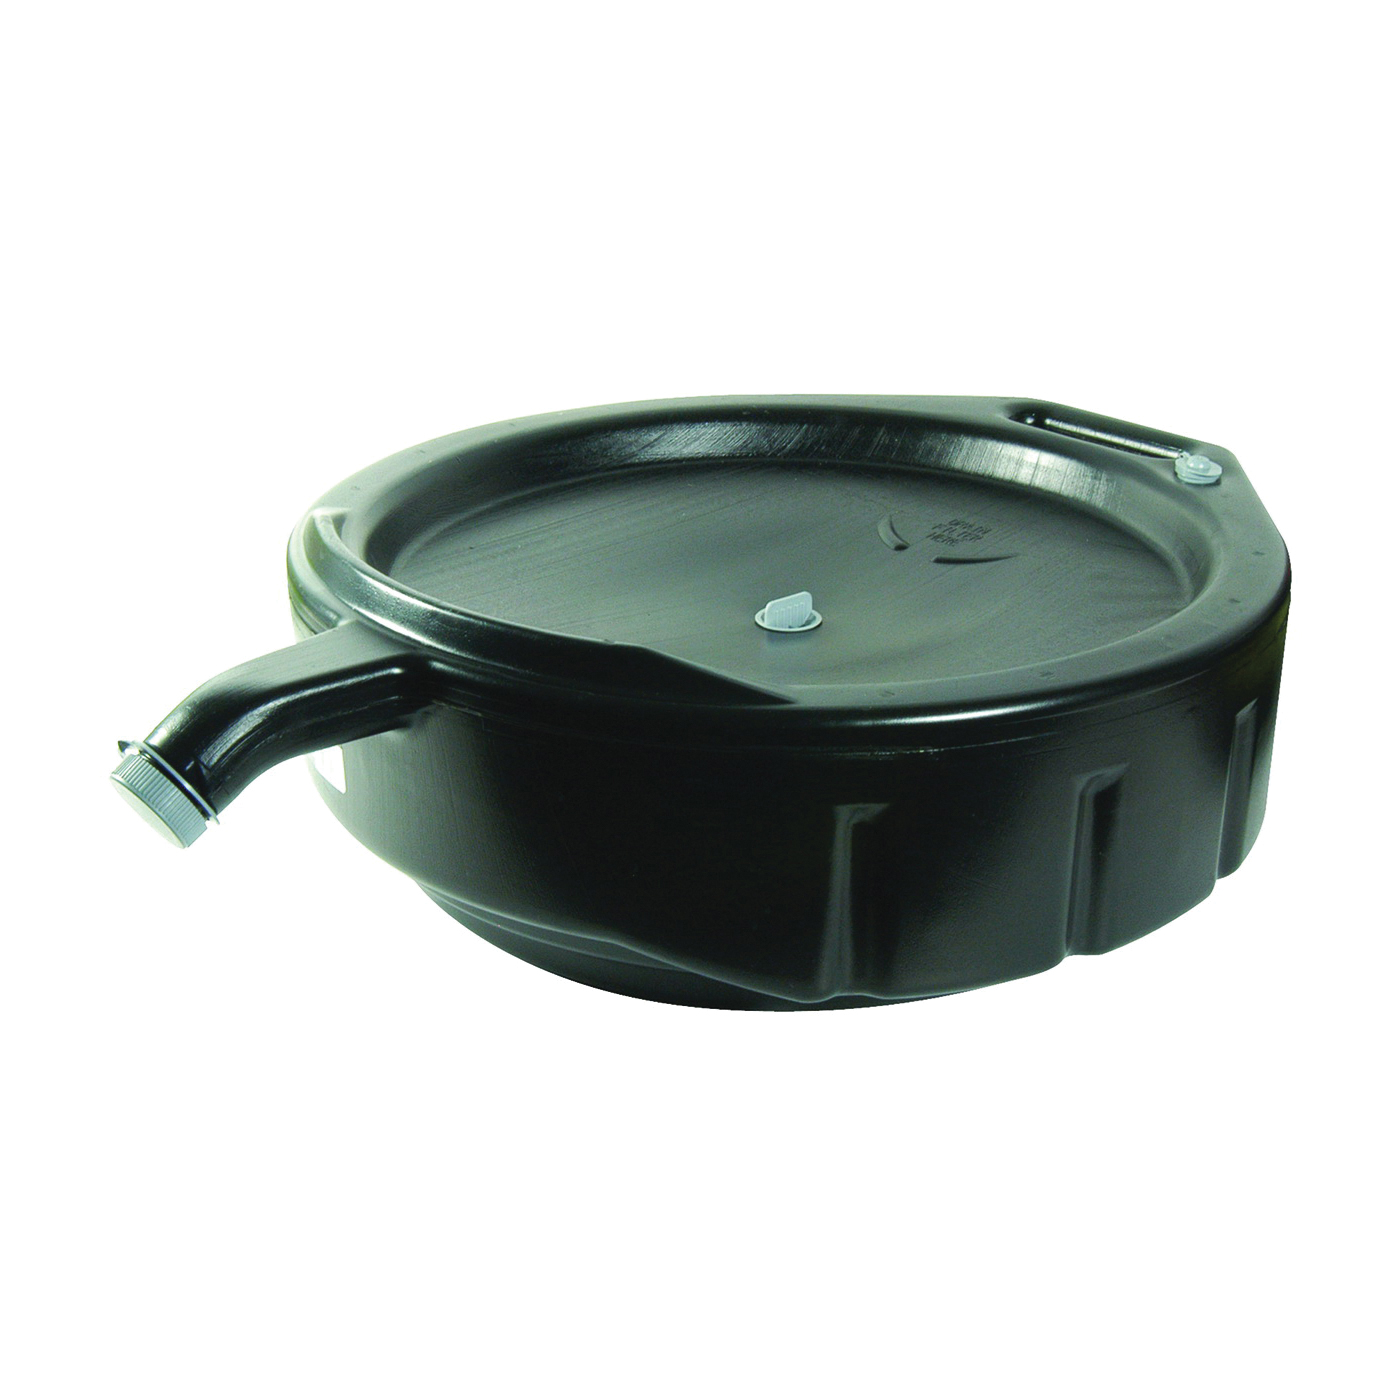 Picture of FloTool Super-Duty 11838 Oil Drain Pan, 15 qt Capacity, Polyethylene, Black